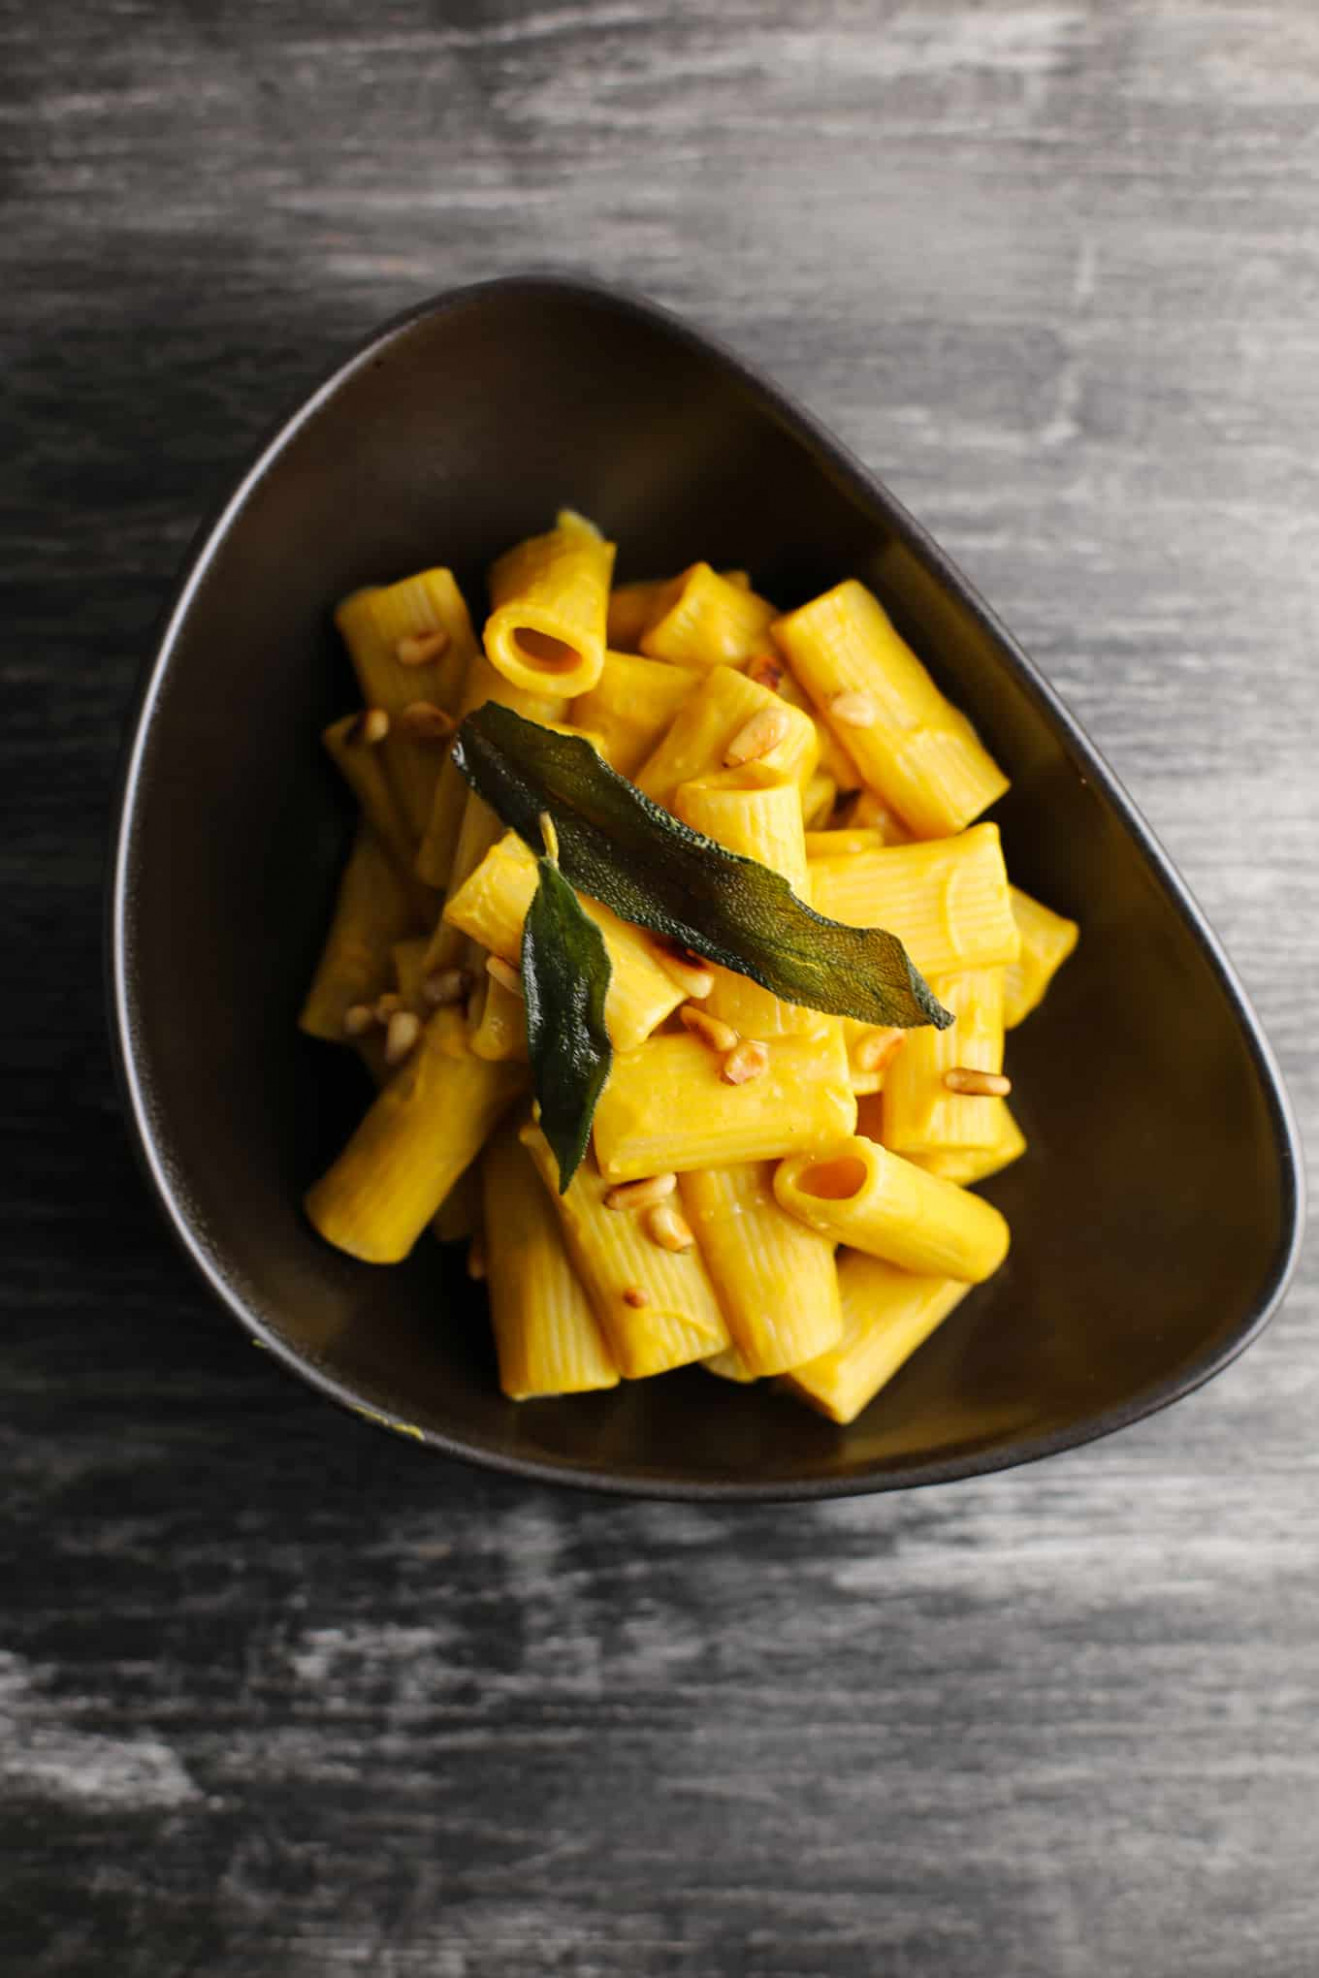 Rigatoni With Vegan Butternut Sage Cream Sauce And Toasted Pine Nuts - Nut Recipes Vegetarian